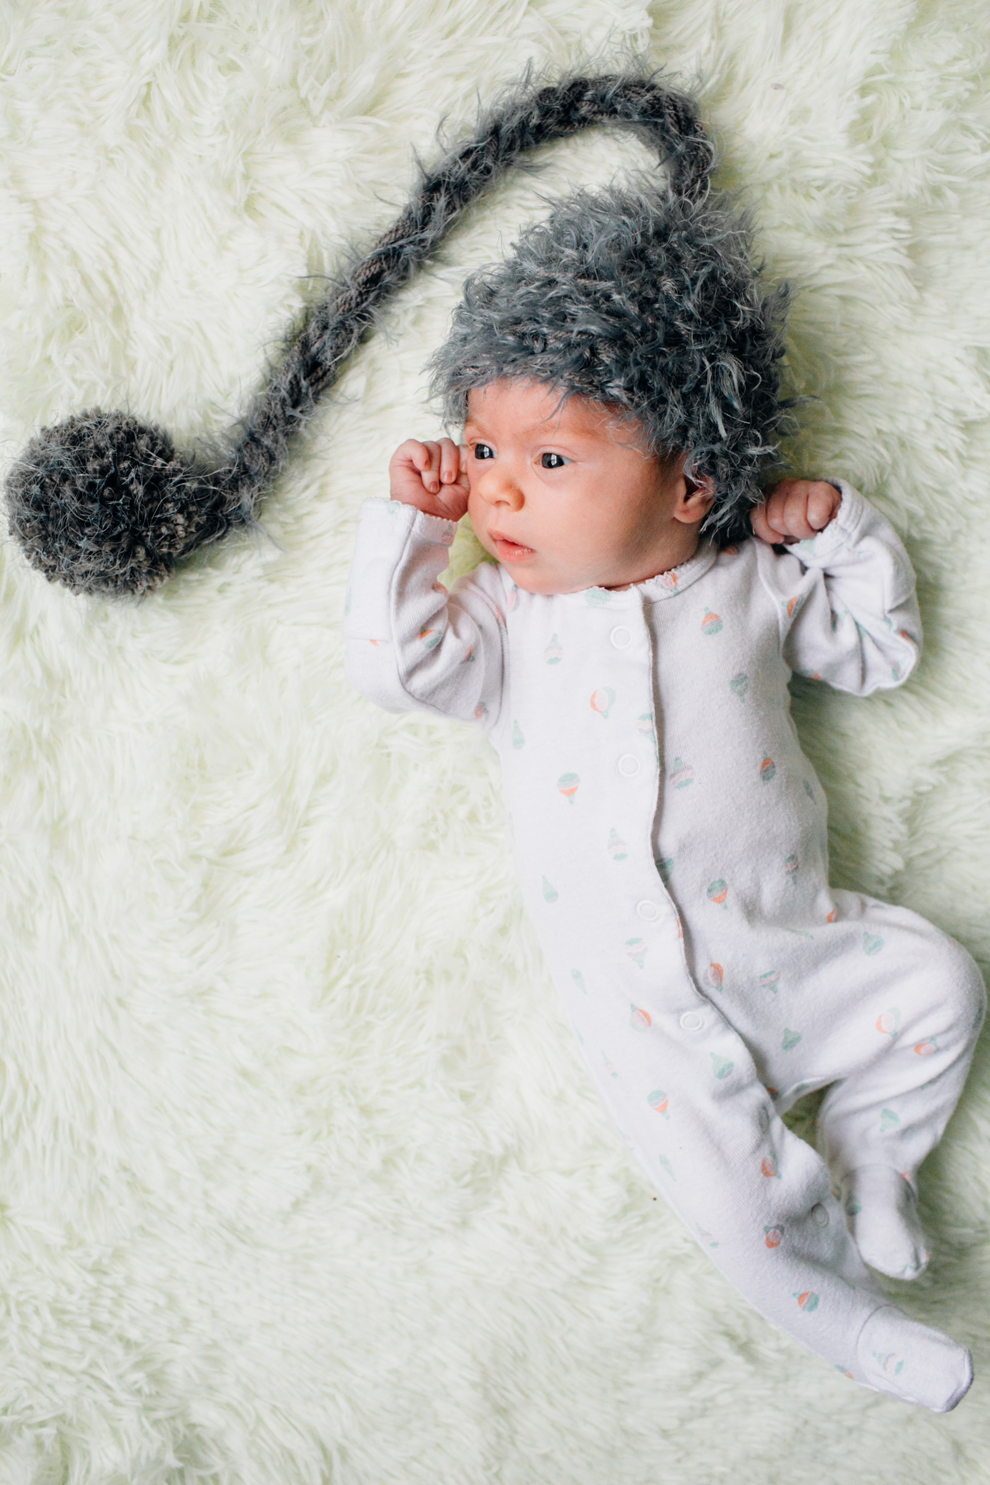 010-bellingham-newborn-photographer-photo-nursery-harper-lifestyle-session.jpg